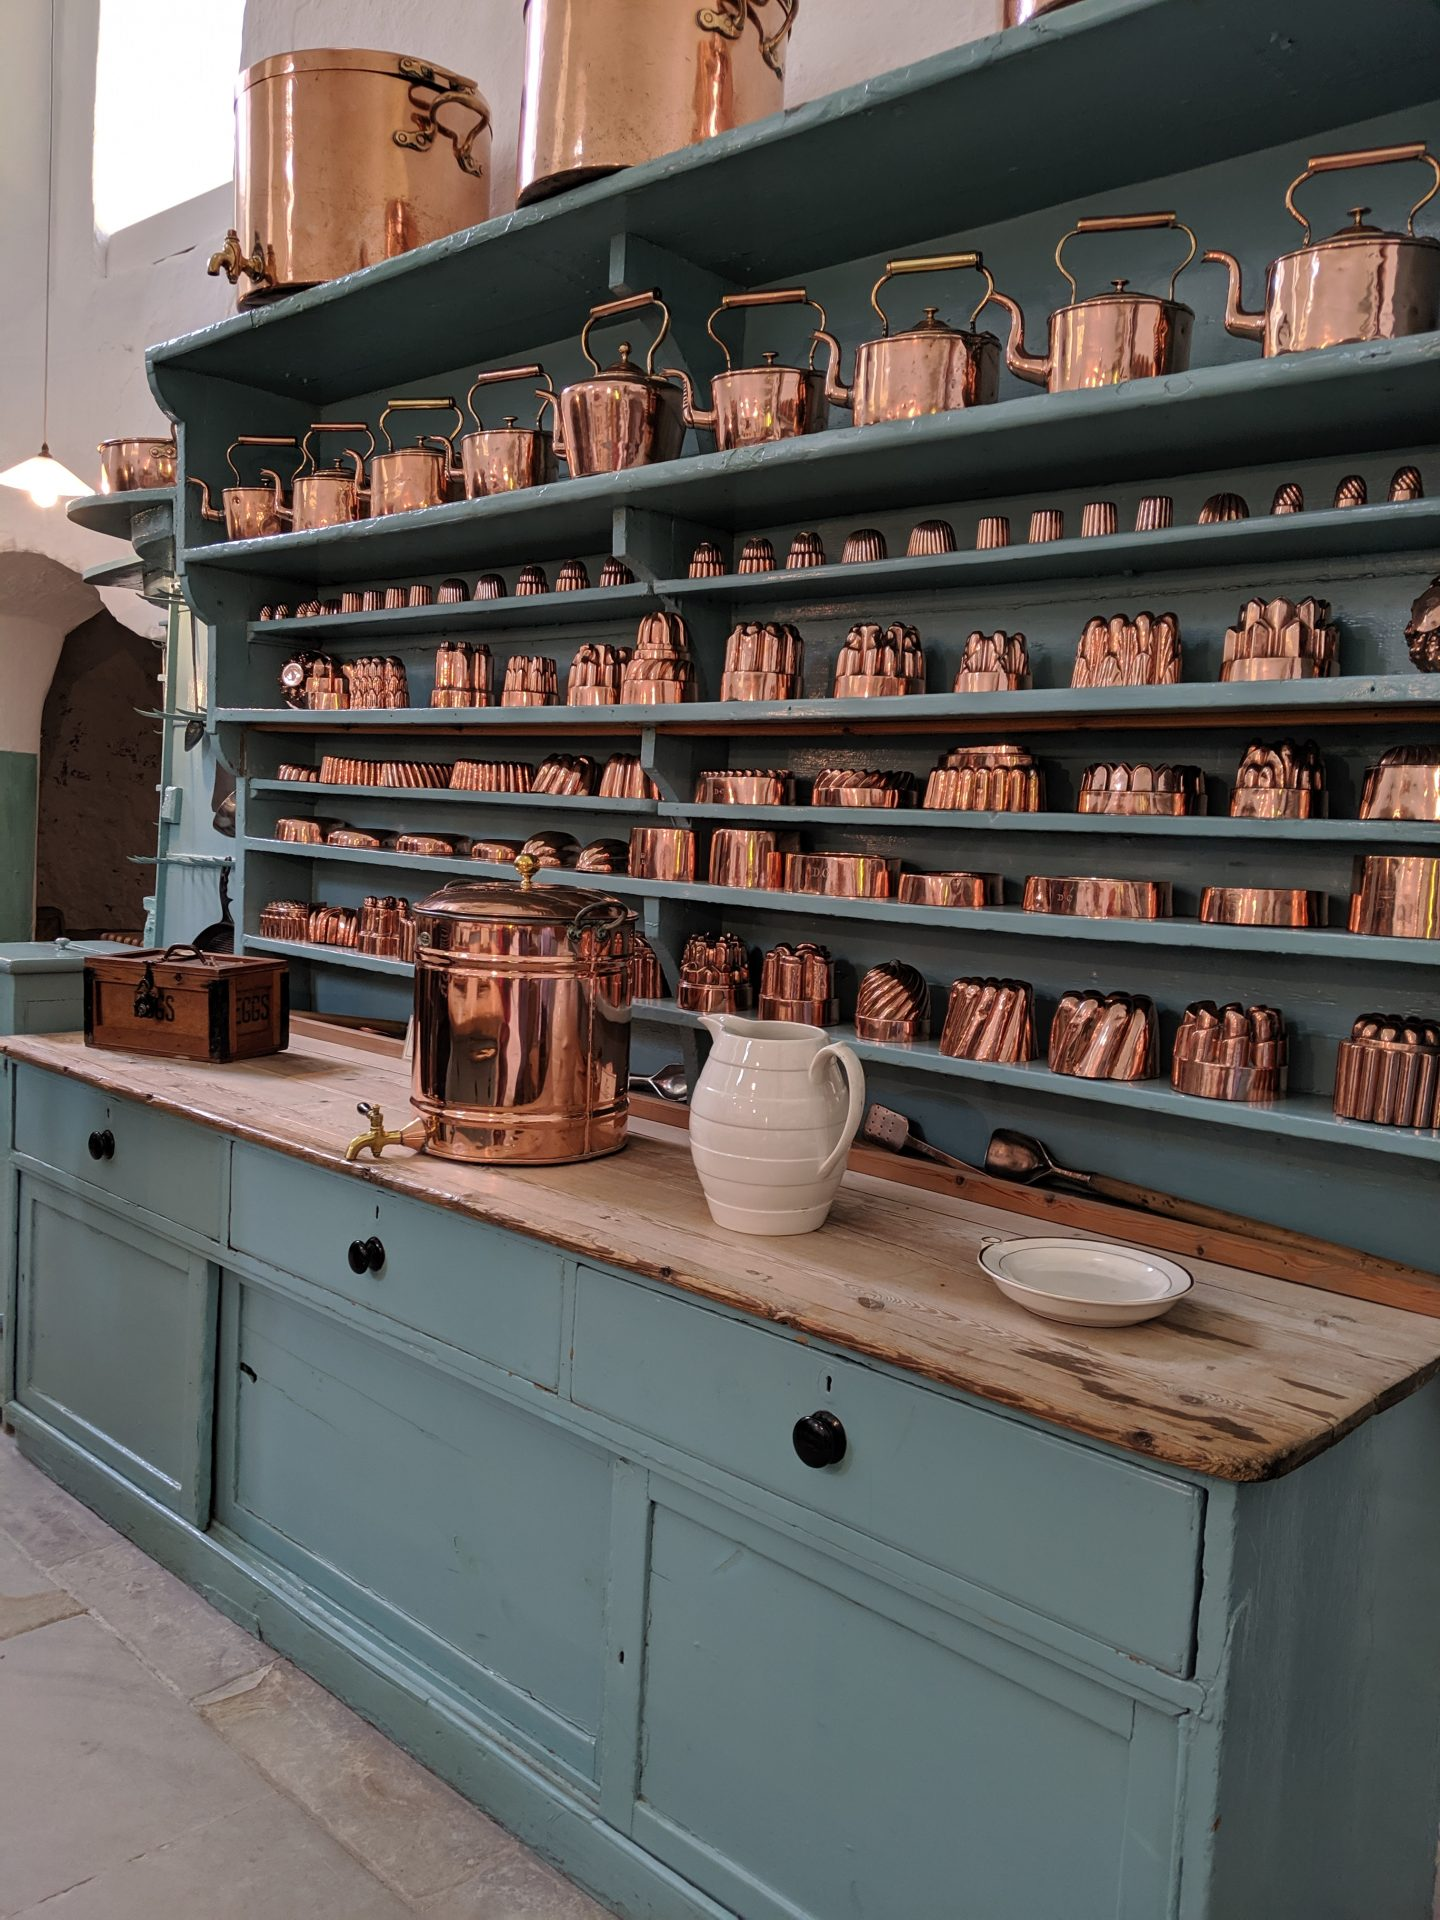 raby castle kitchen cabinet